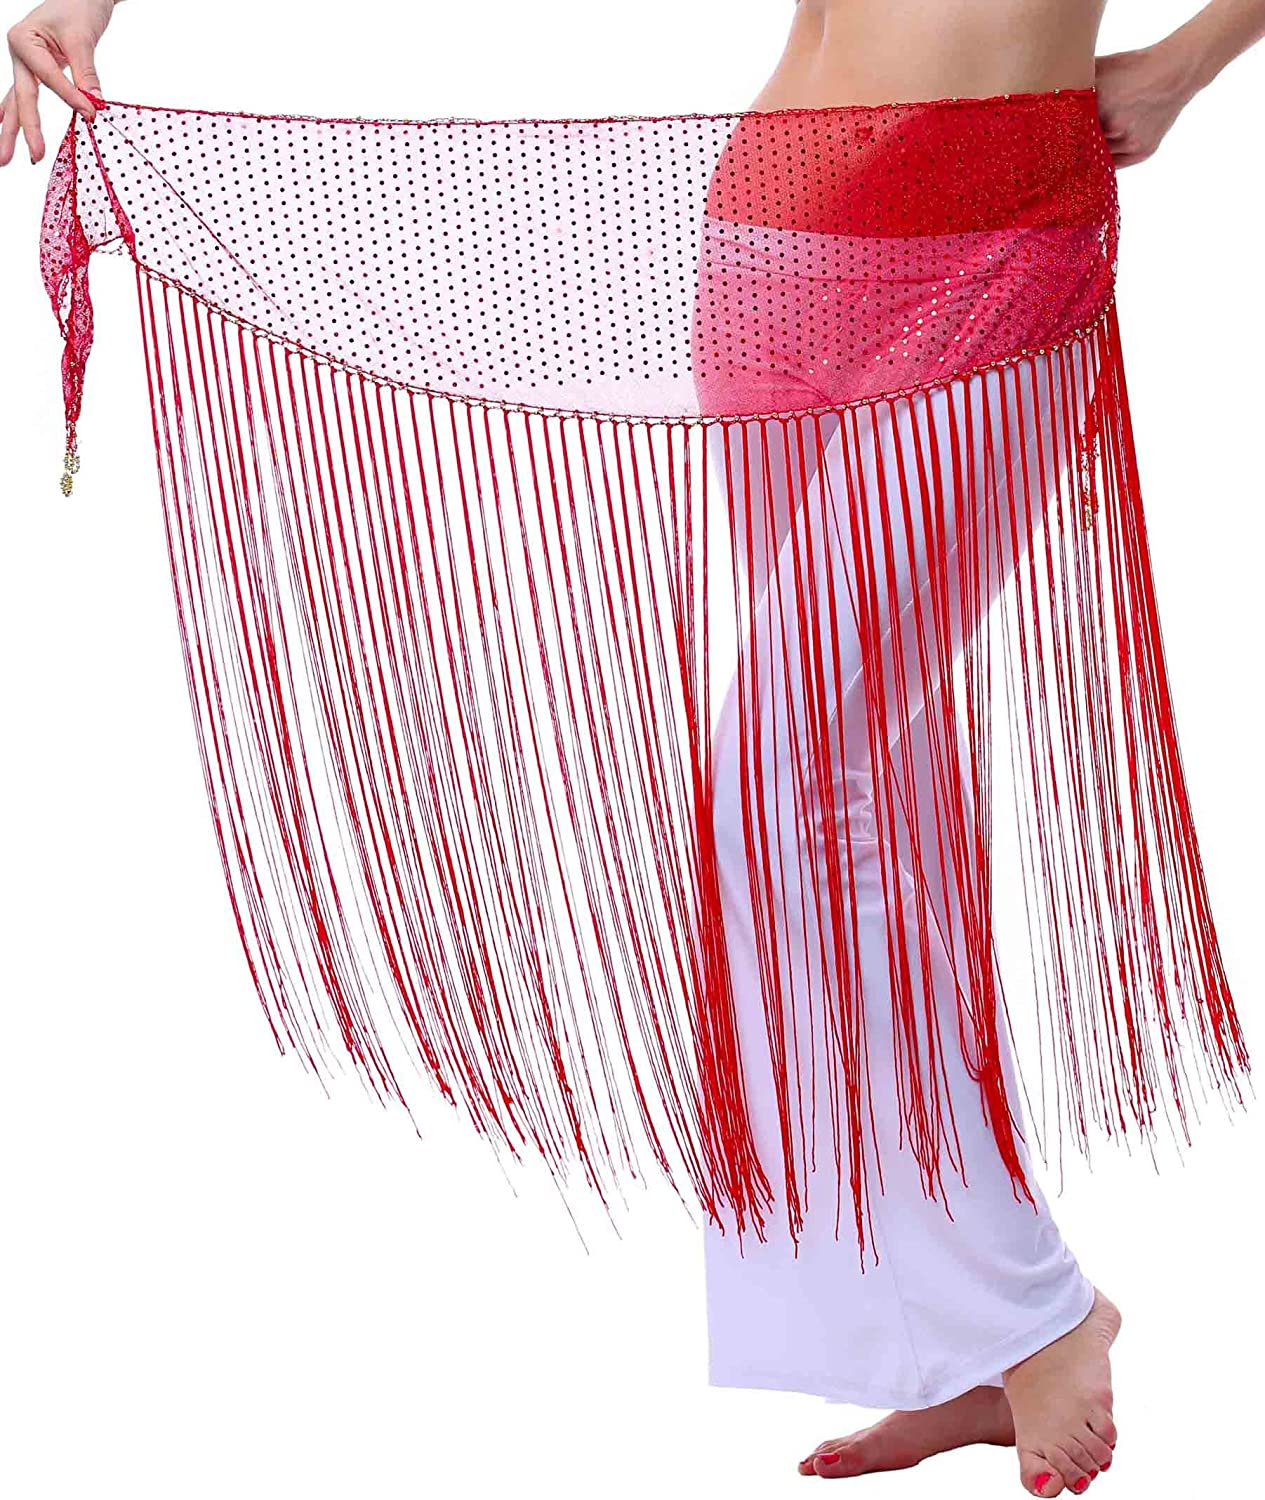 Fairycece Halloween Belly Dance Flaring Hip Scarf Triangle Long Fringe Tassels